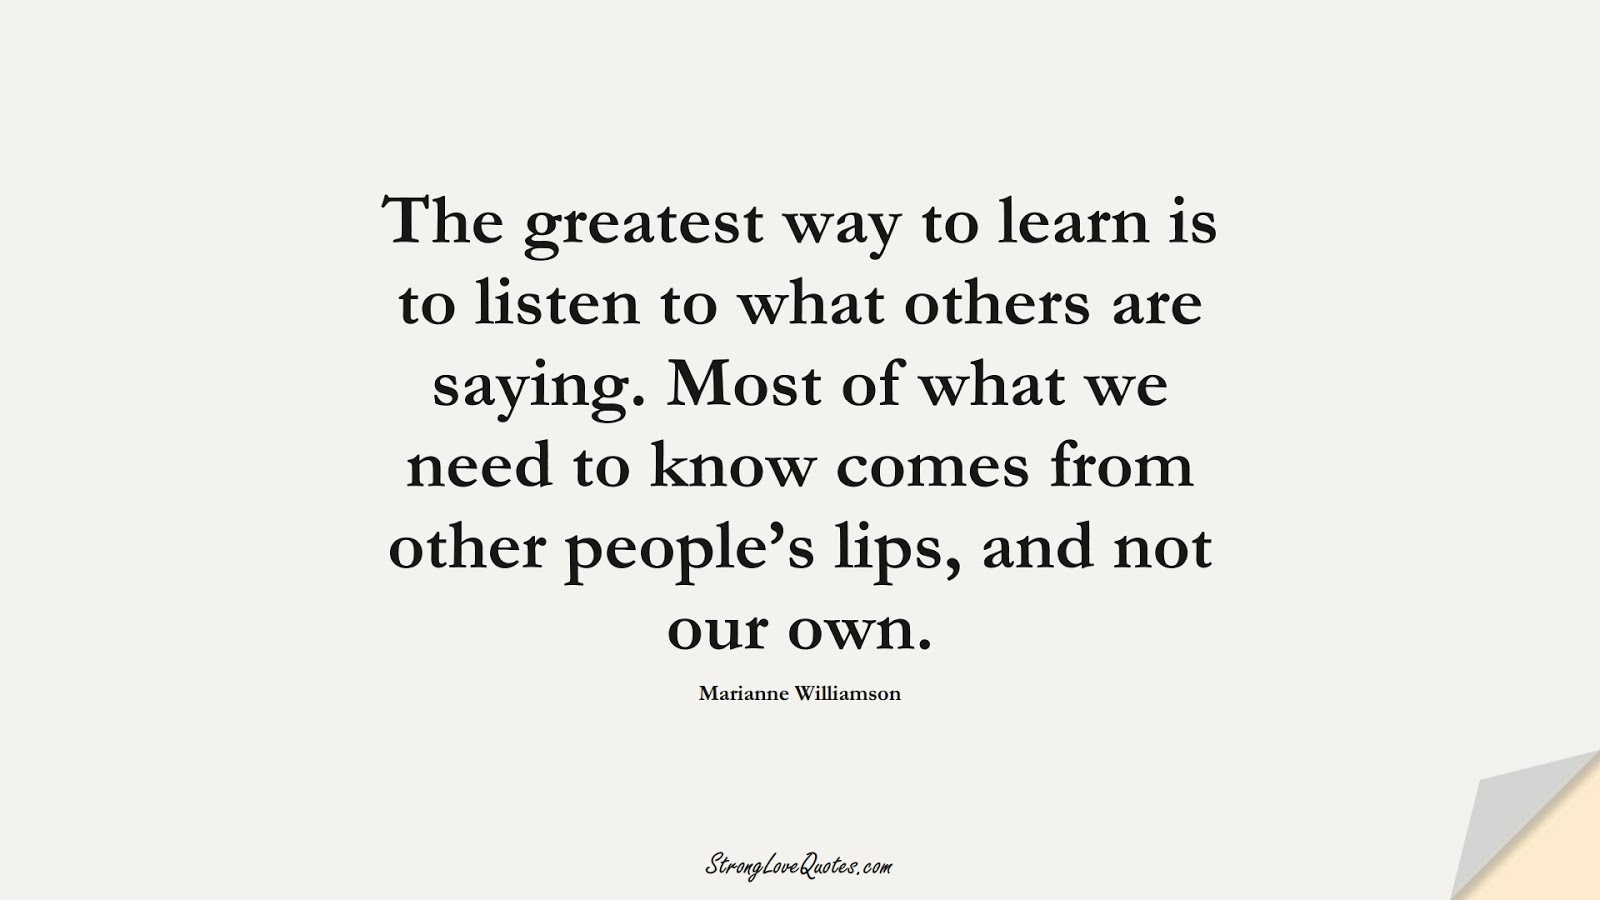 The greatest way to learn is to listen to what others are saying. Most of what we need to know comes from other people's lips, and not our own. (Marianne Williamson);  #LearningQuotes